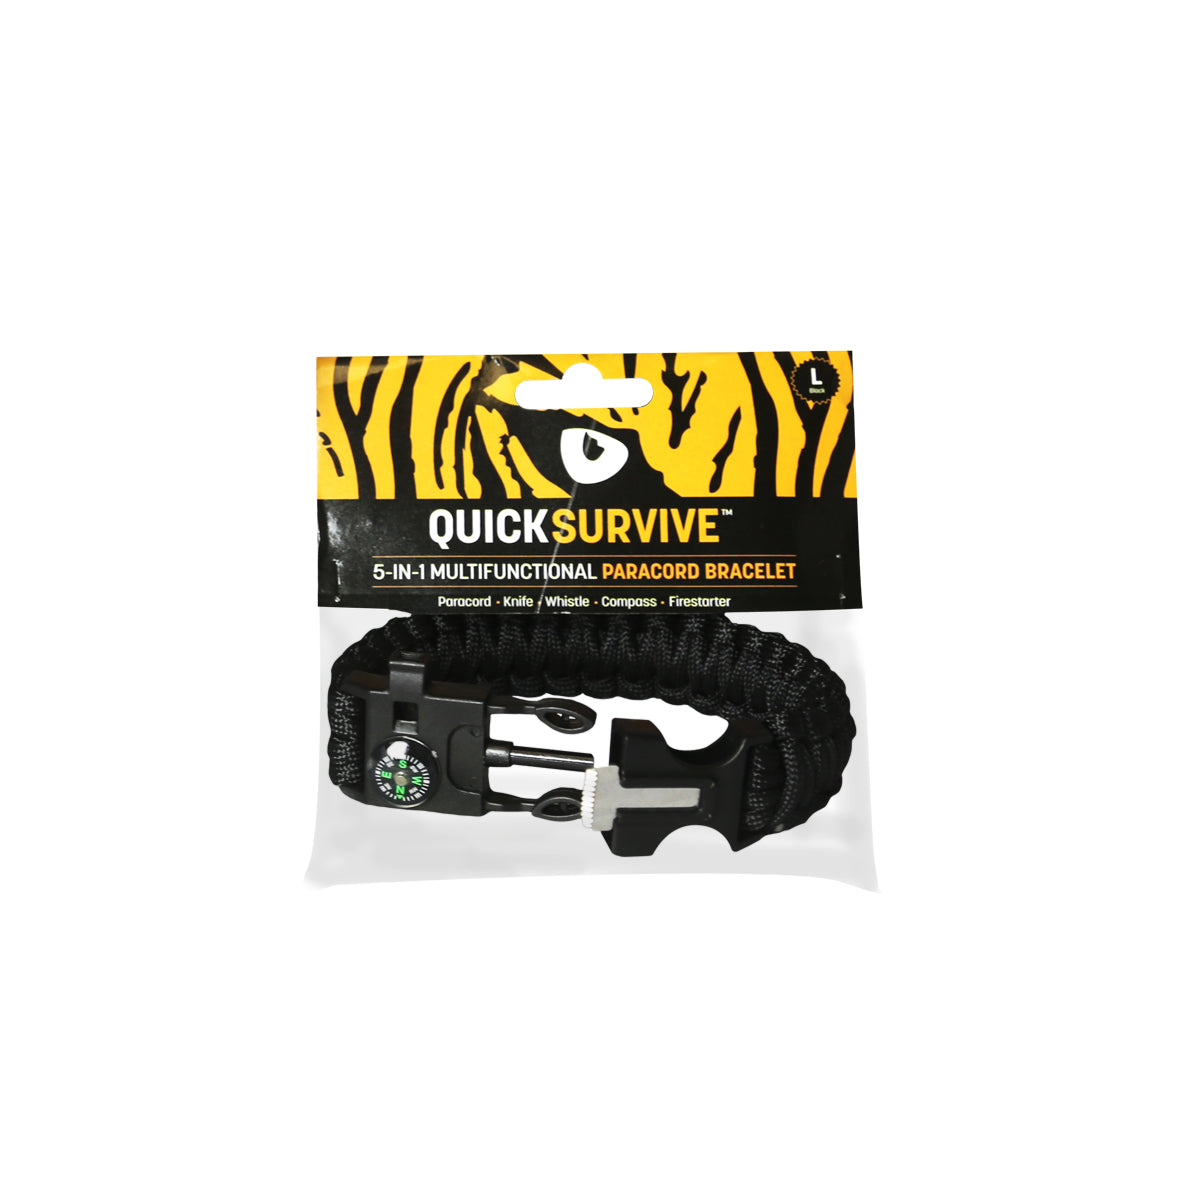 5-in-1 Paracord Bracelet - QUICKSURVIVE essential for survival with the 10 feet of paracord, 100db whistle, compass, and knife all on your wrist.